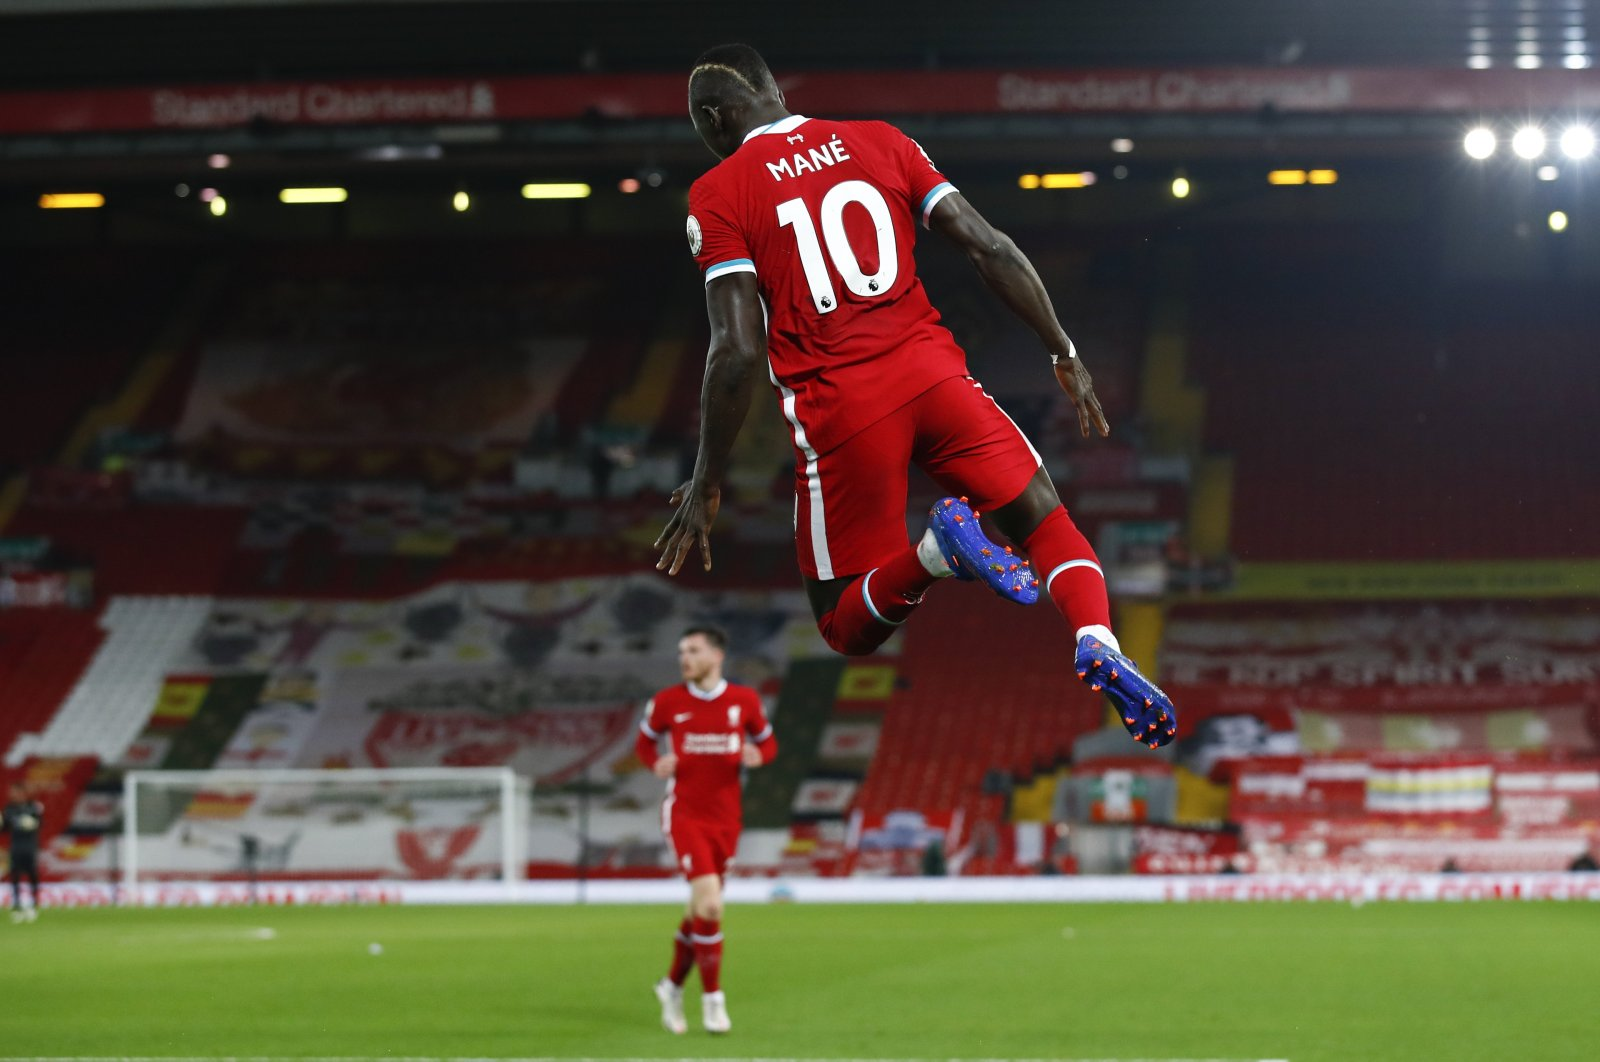 Liverpool's Sadio Mane celebrates after scoring his team's first goal during the Premier League match against Arsenal, in Liverpool, England, Sept. 28, 2020. (AP Photo)